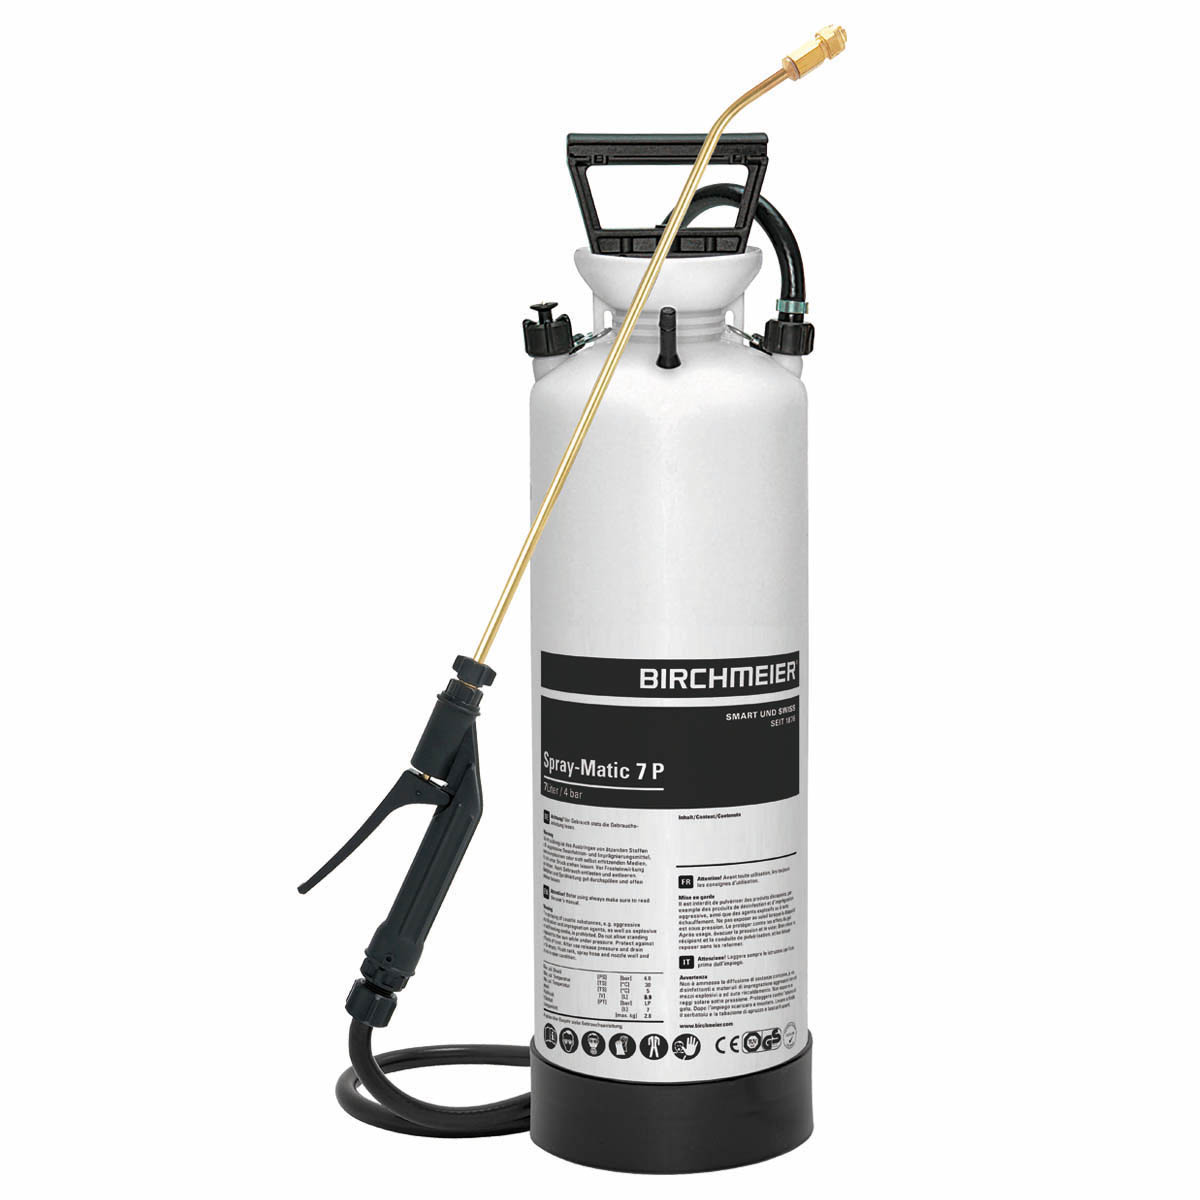 Spray-Matic 7 P